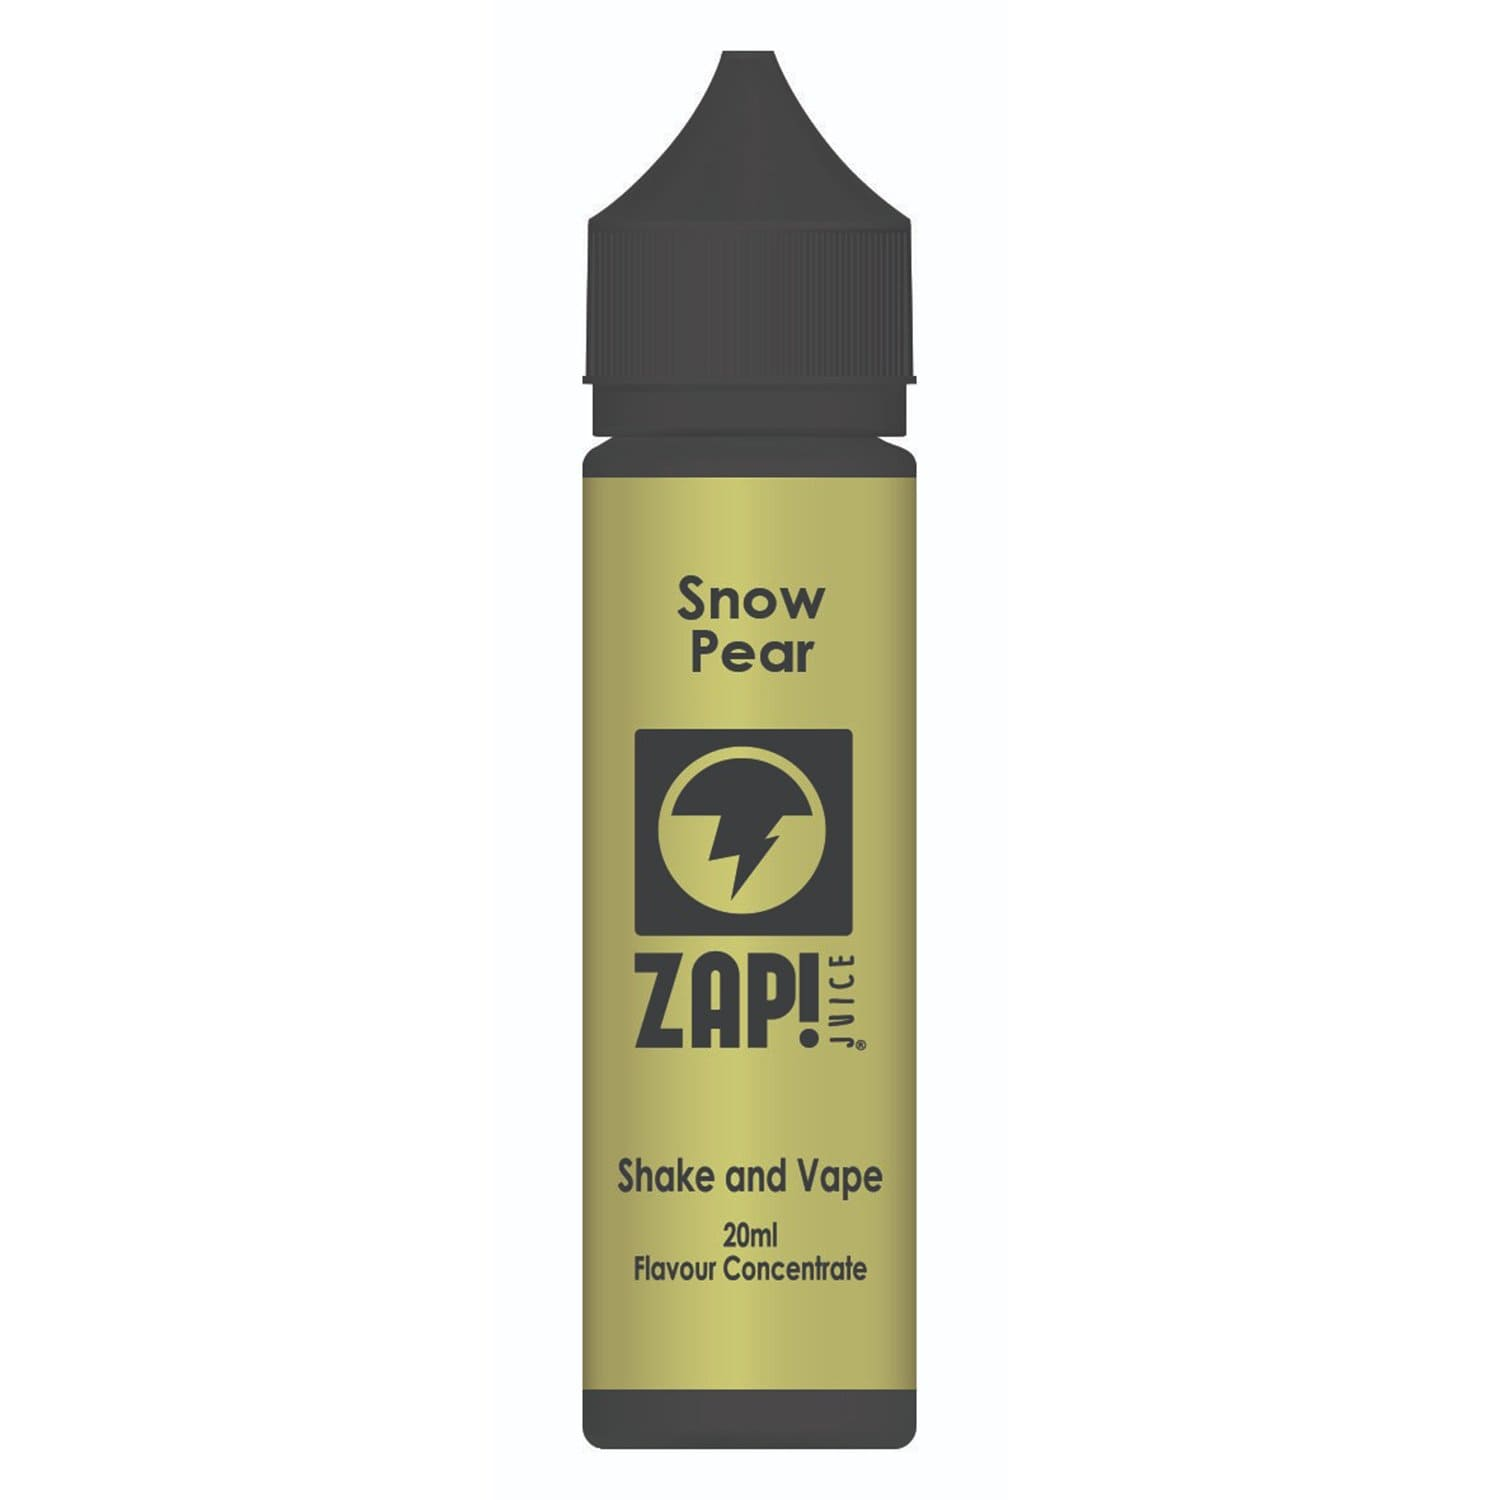 ZAP! Juice Snow Pear Shake and Vape 20ml Flavour Concentrate - Zap Juice Online UK | E-Liquid | Vape Shop  | Authentic flavours